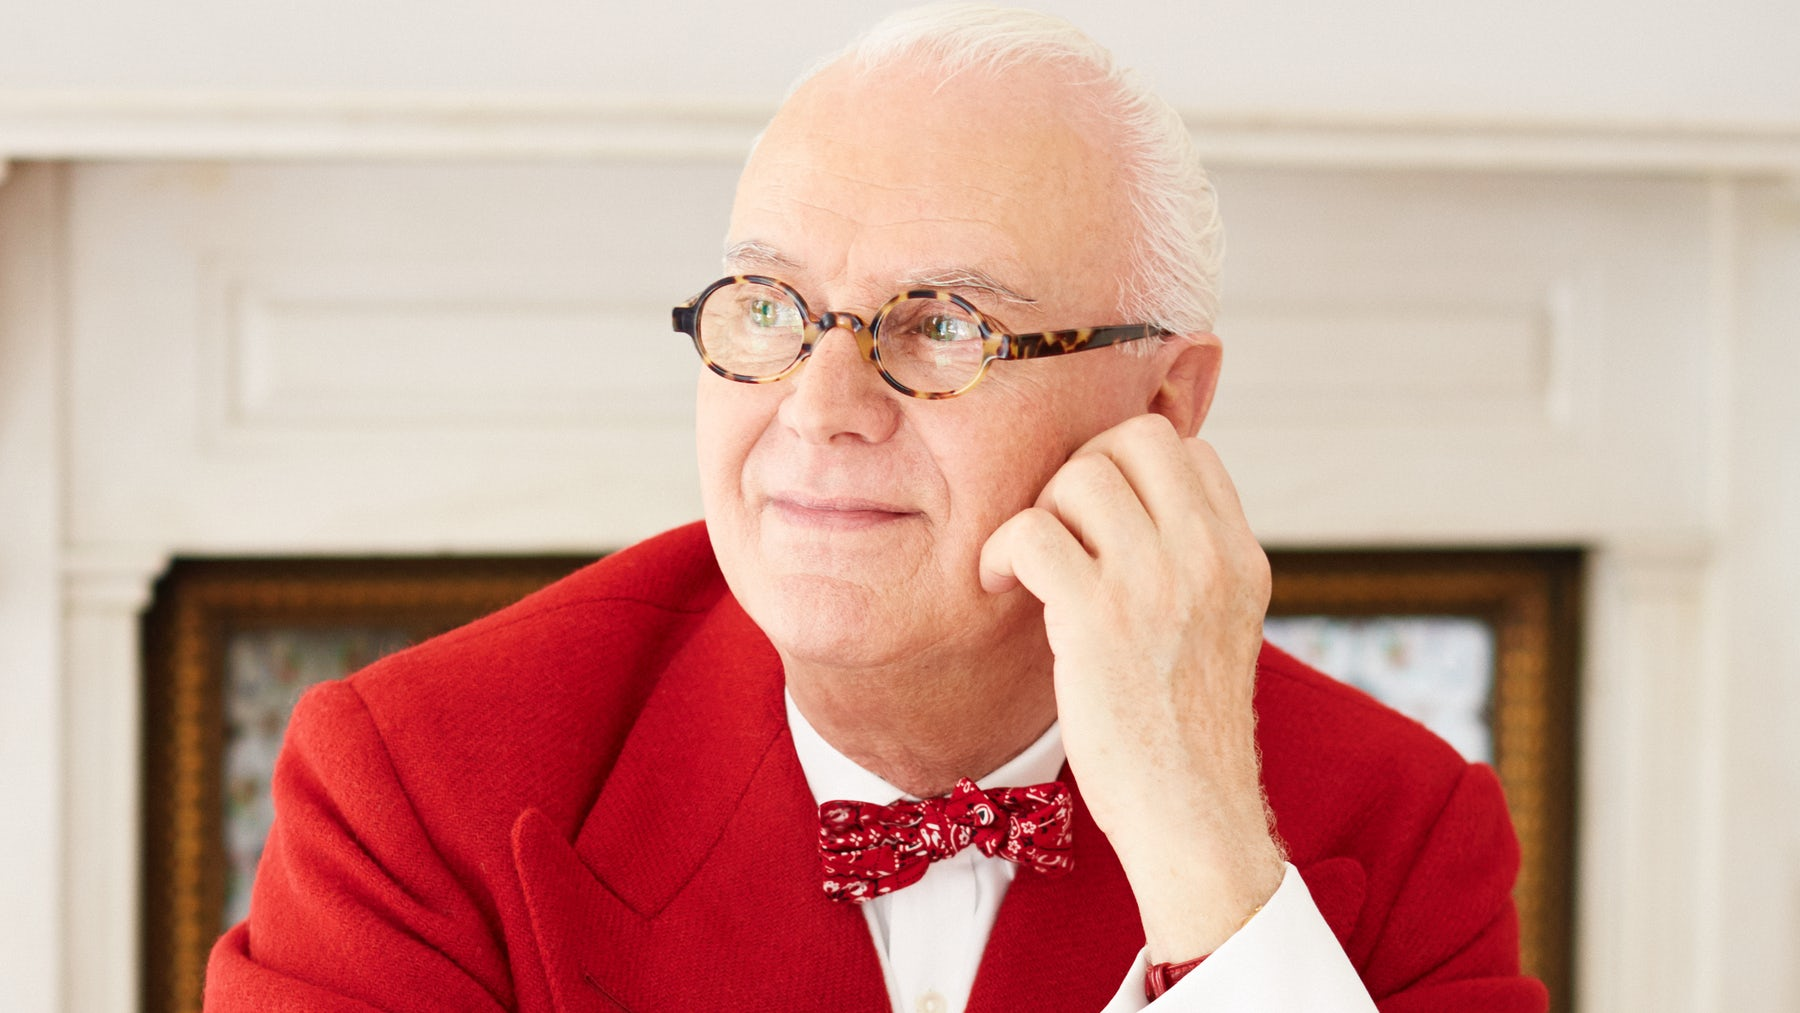 Manolo Blahnik | Souce: Courtesy